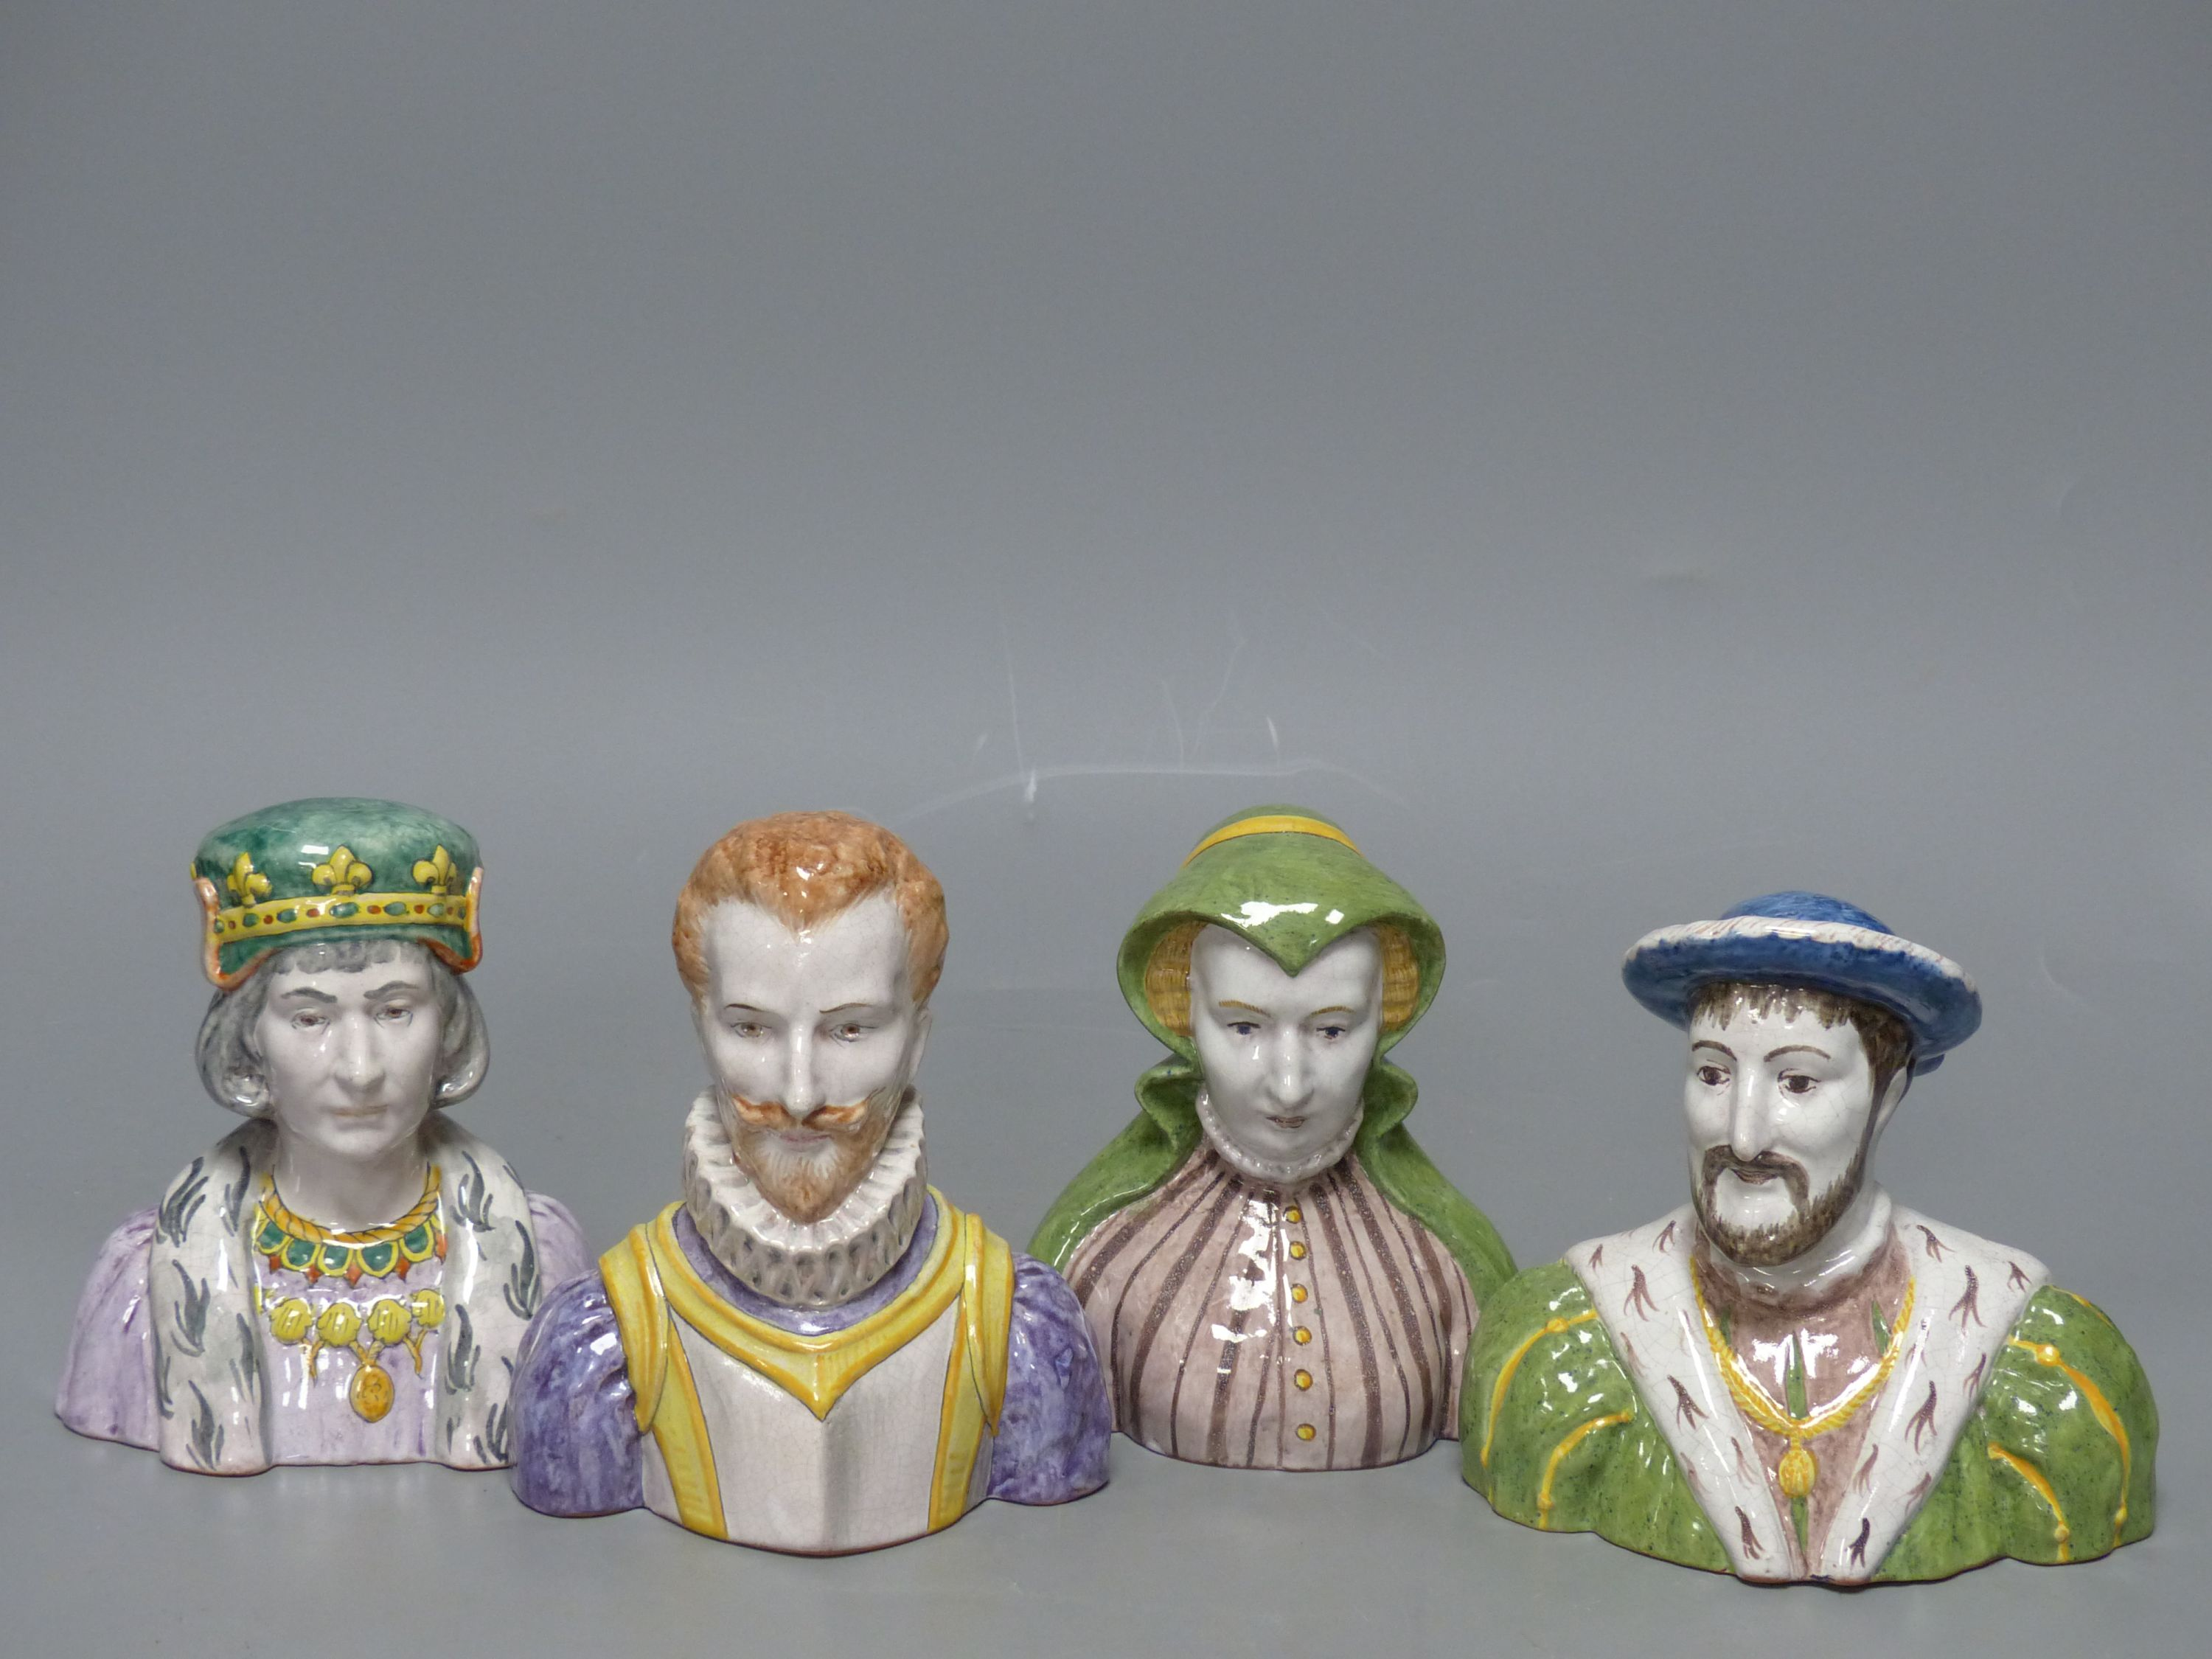 A French tin-glazed faience small bust of Catherine de Medici, another of Francois I and two - Image 2 of 5